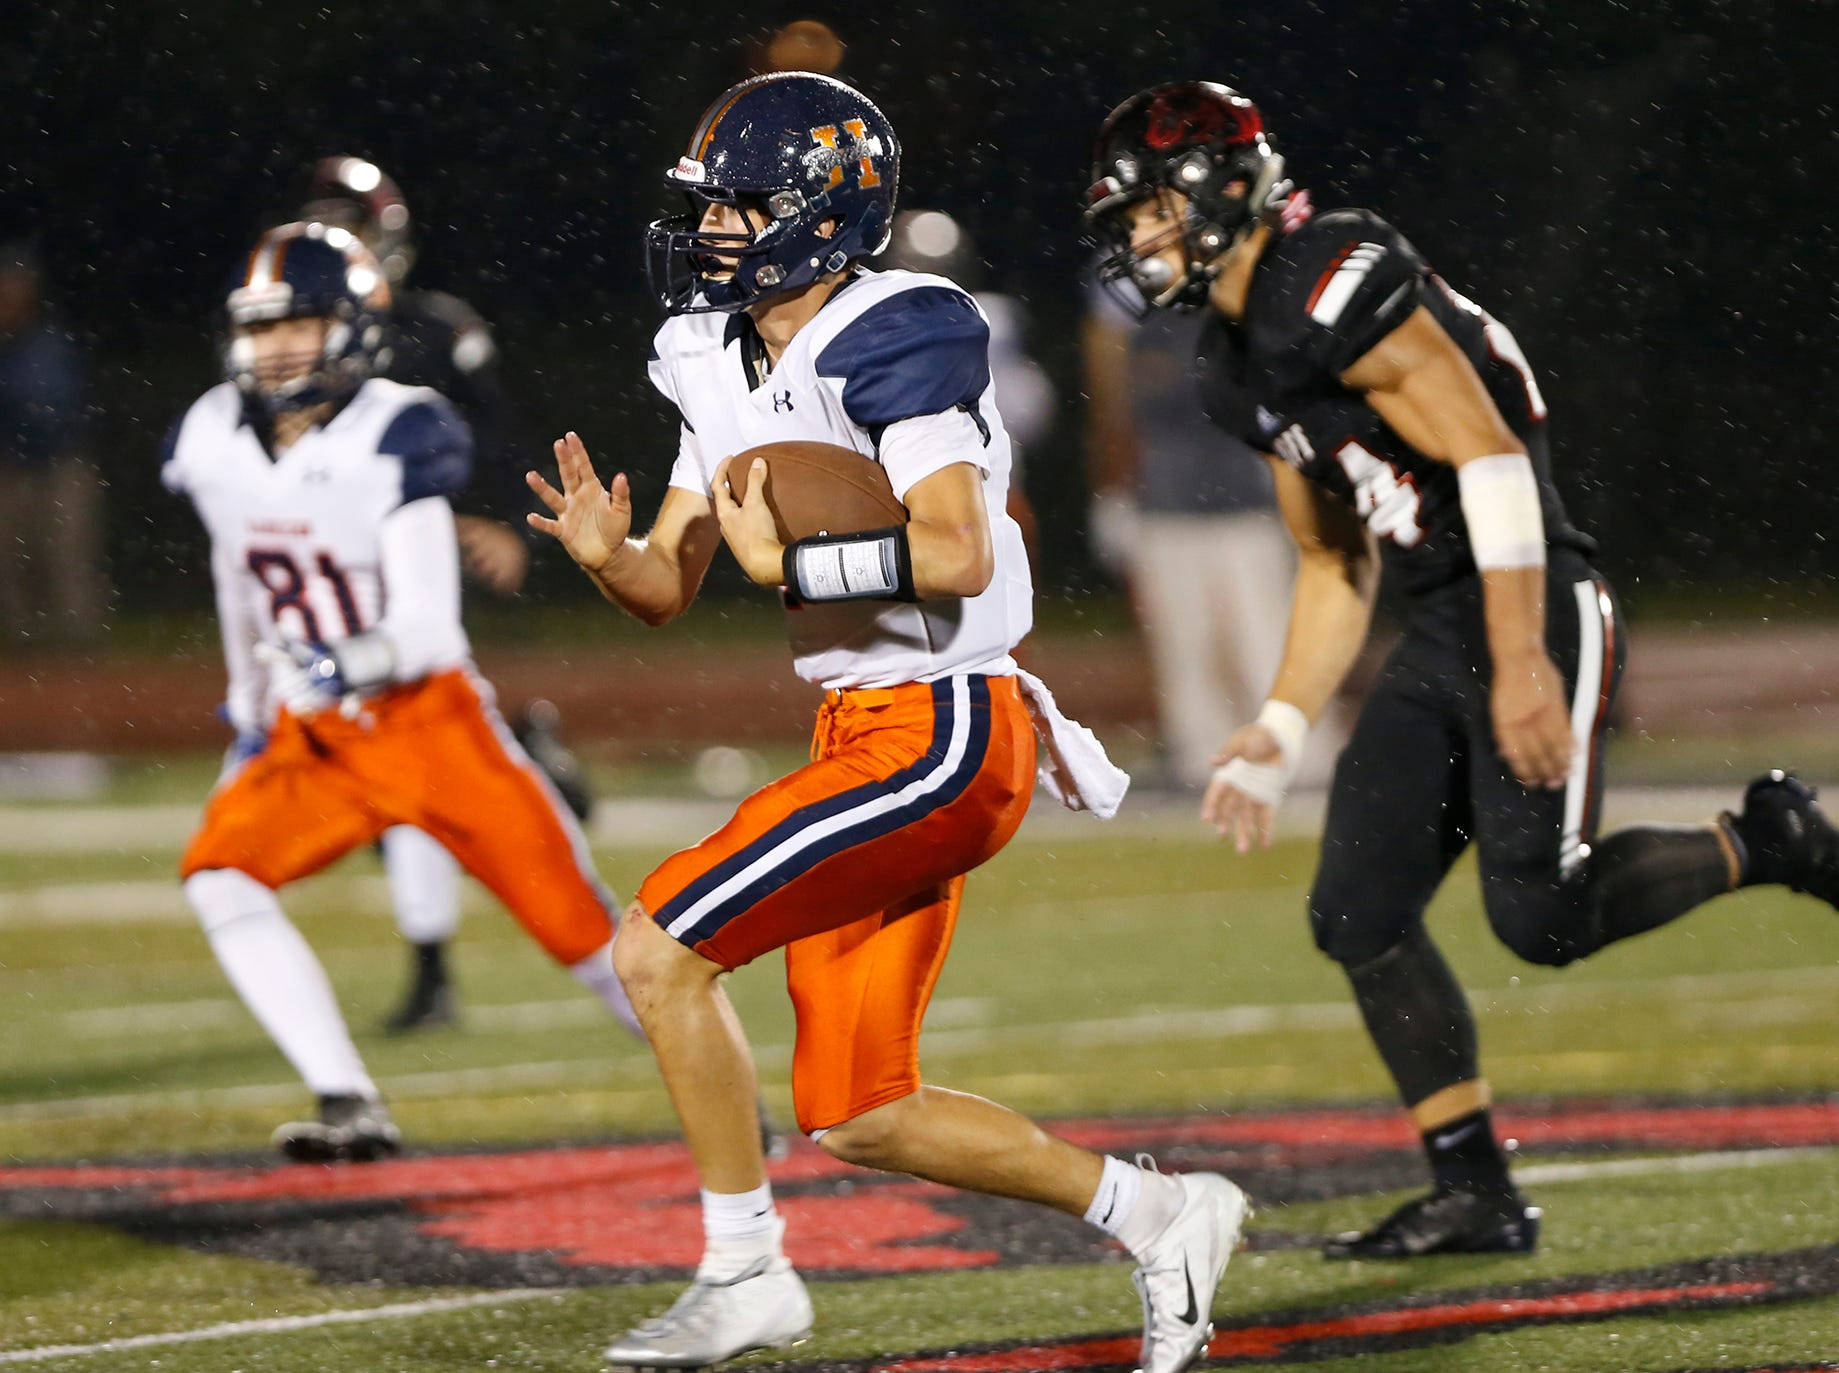 Harrison quarterback Andrew Jensen with a carry against Lafayette Jeff in the fourth quarter Friday, September 7, 2018, at Scheumann Stadium. Jeff defeated Harrison 31-14.